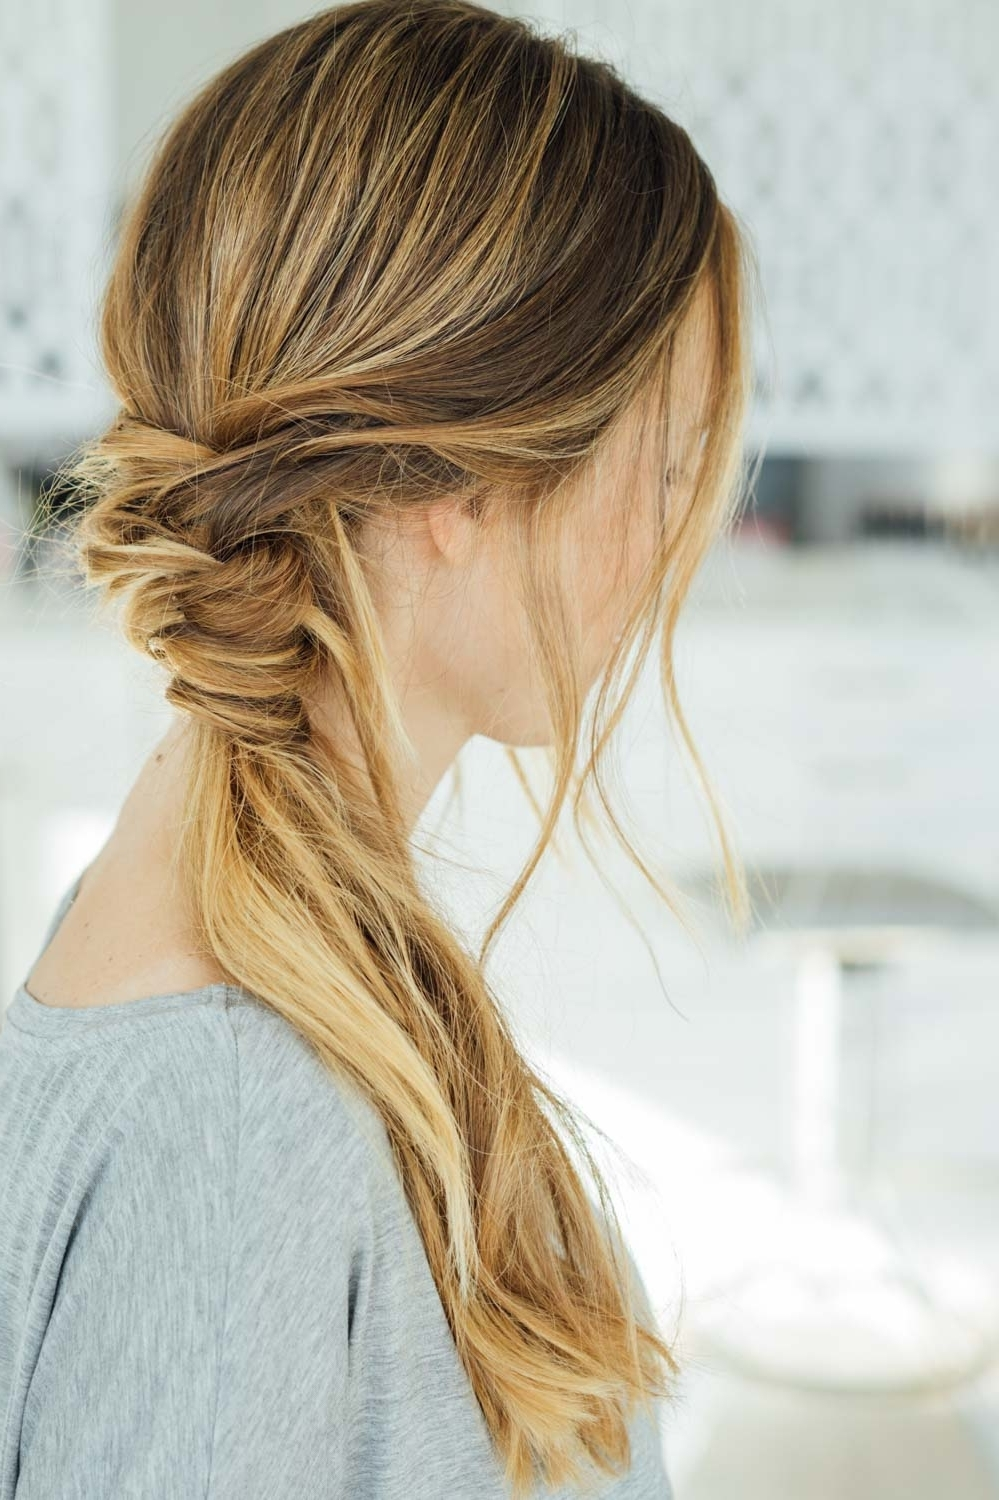 16 Easy Hairstyles For Hot Summer Days | The Everygirl Cute Summer Hairstyles For Medium Hair